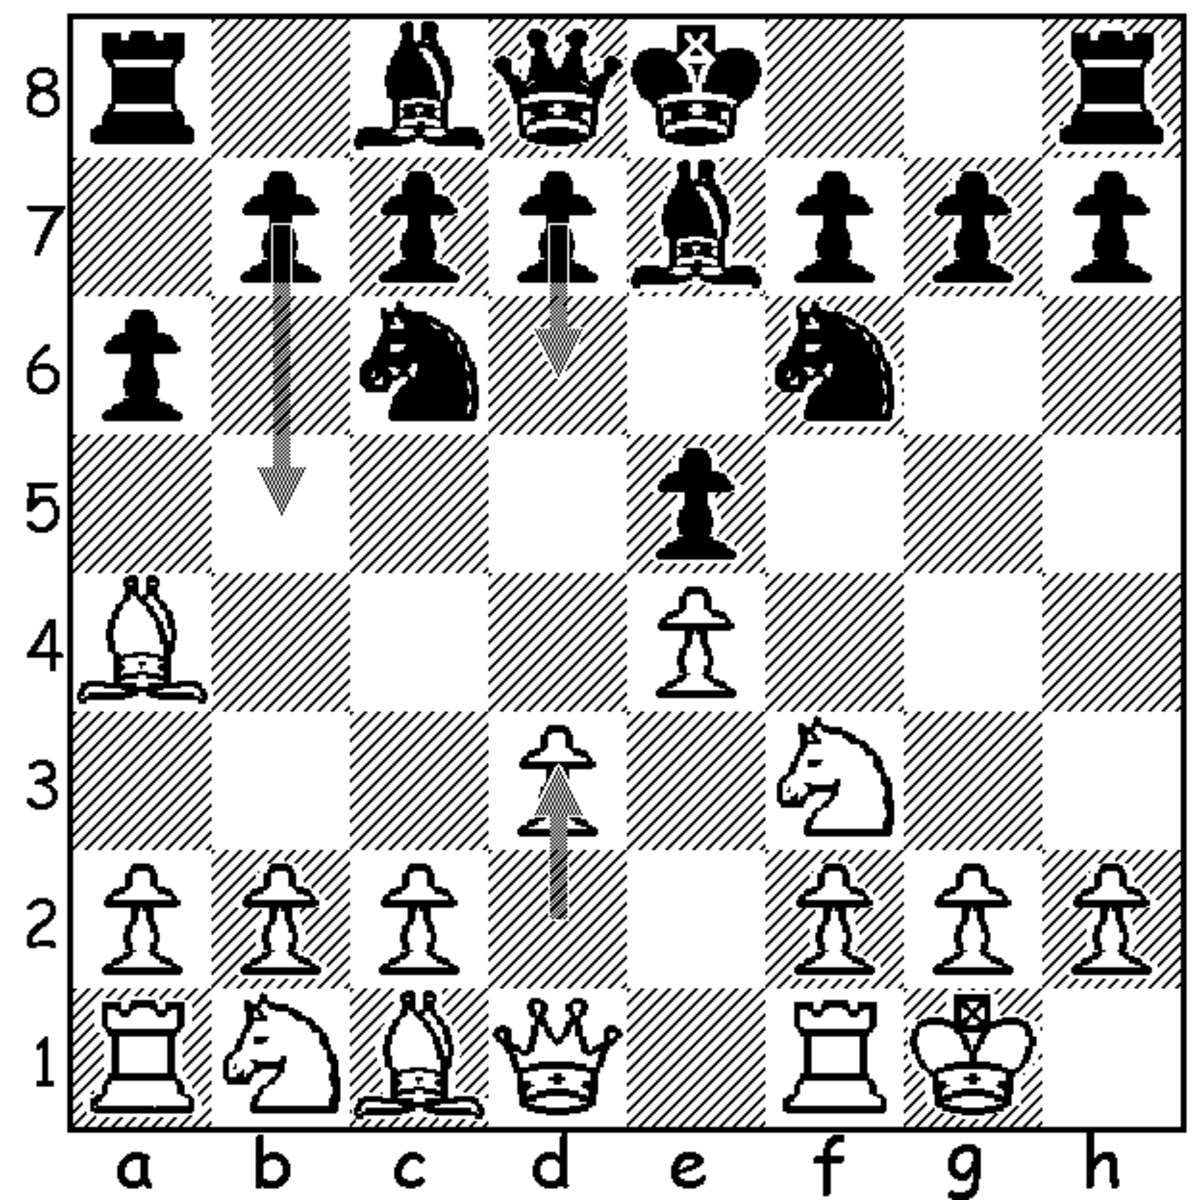 Position in mainline Ruy Lopez after white's move 6.d3 (shown with the bottom arrow), and black's only two reasonable responses: 6...b5 and 6...d6 (shown with the above arrows).